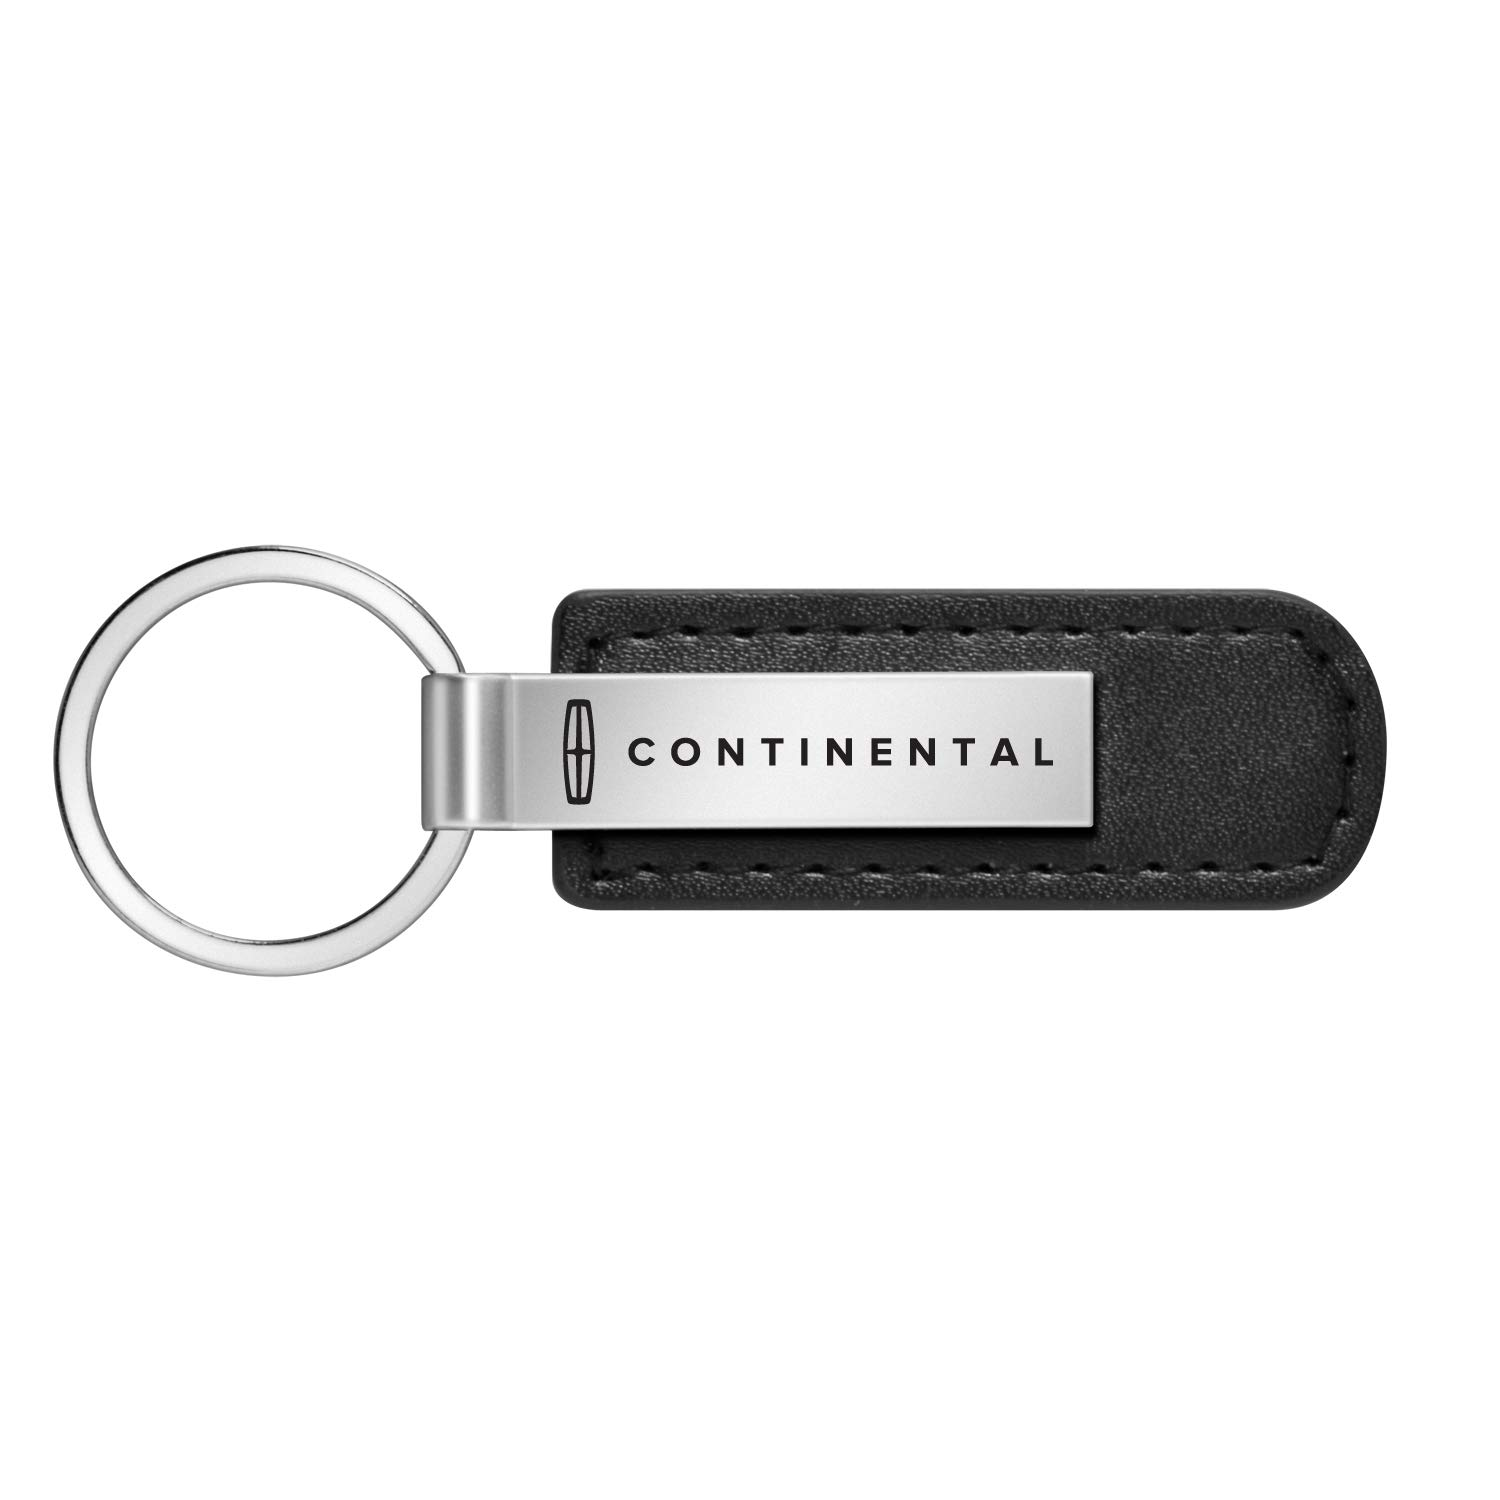 Lincoln Black Leather Strap Key Chain iPick Image Continental